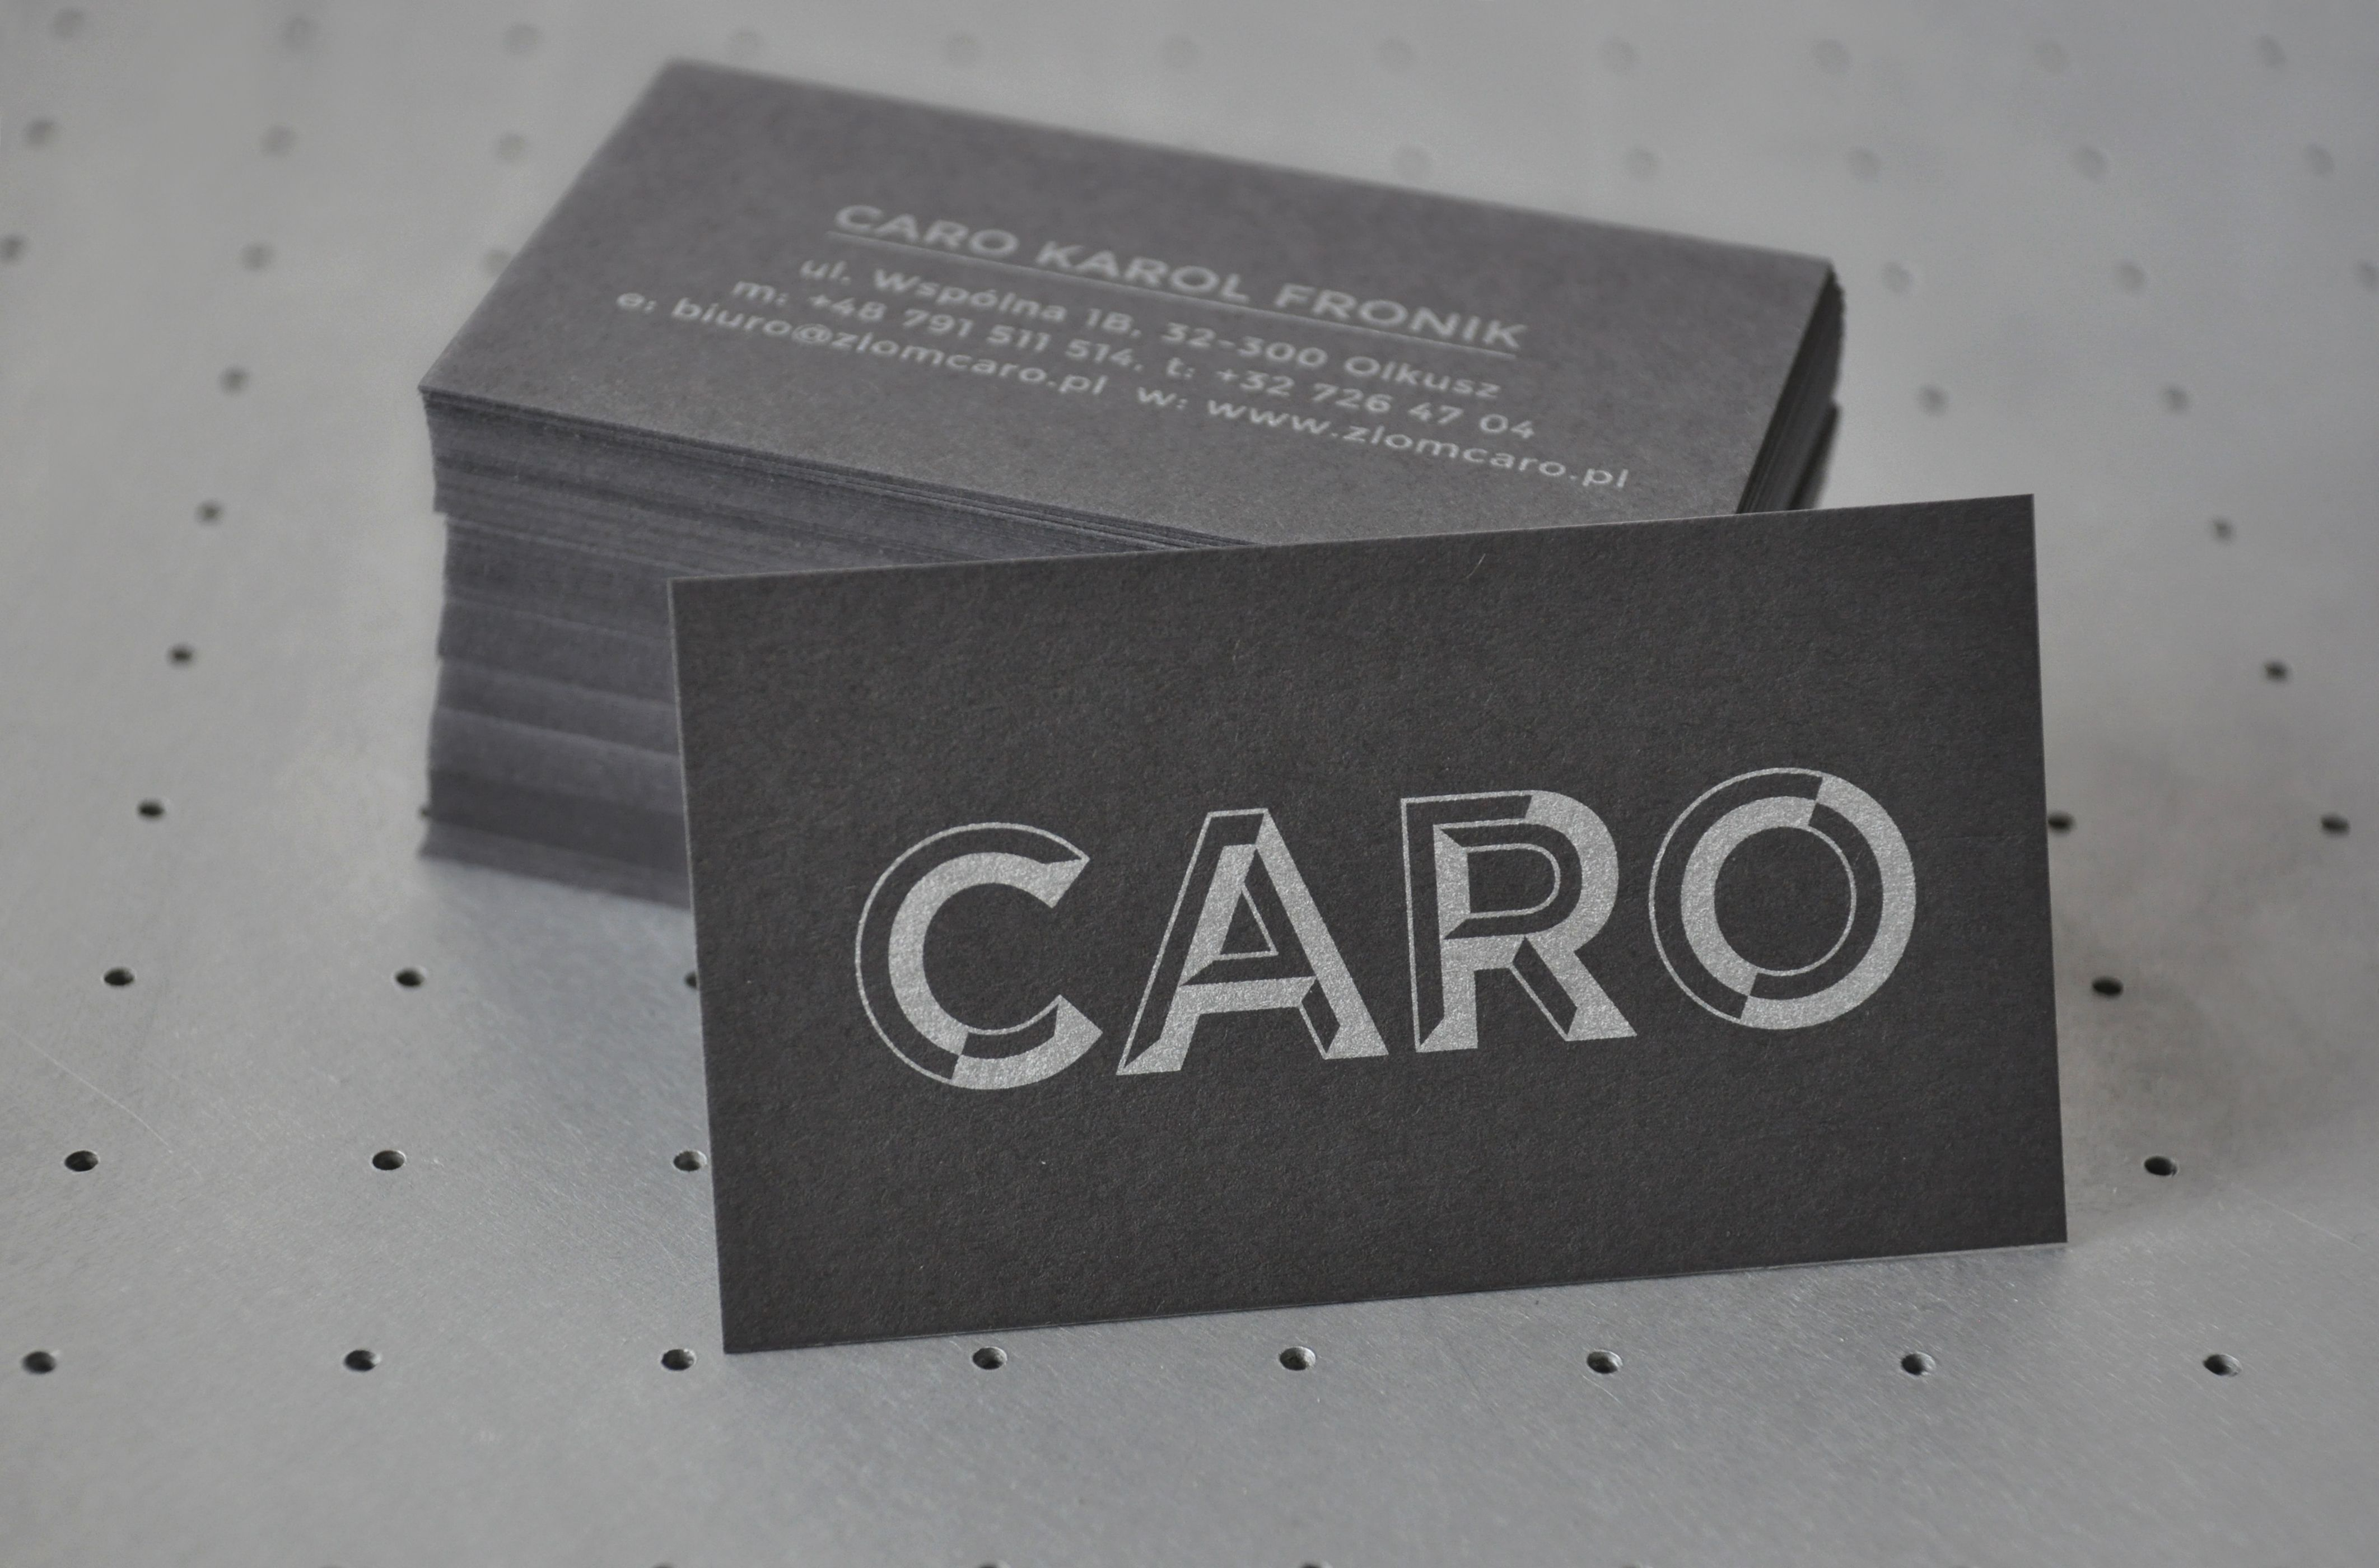 Business cards by @MaduStudio #silkscreen silver on grey <3 ...